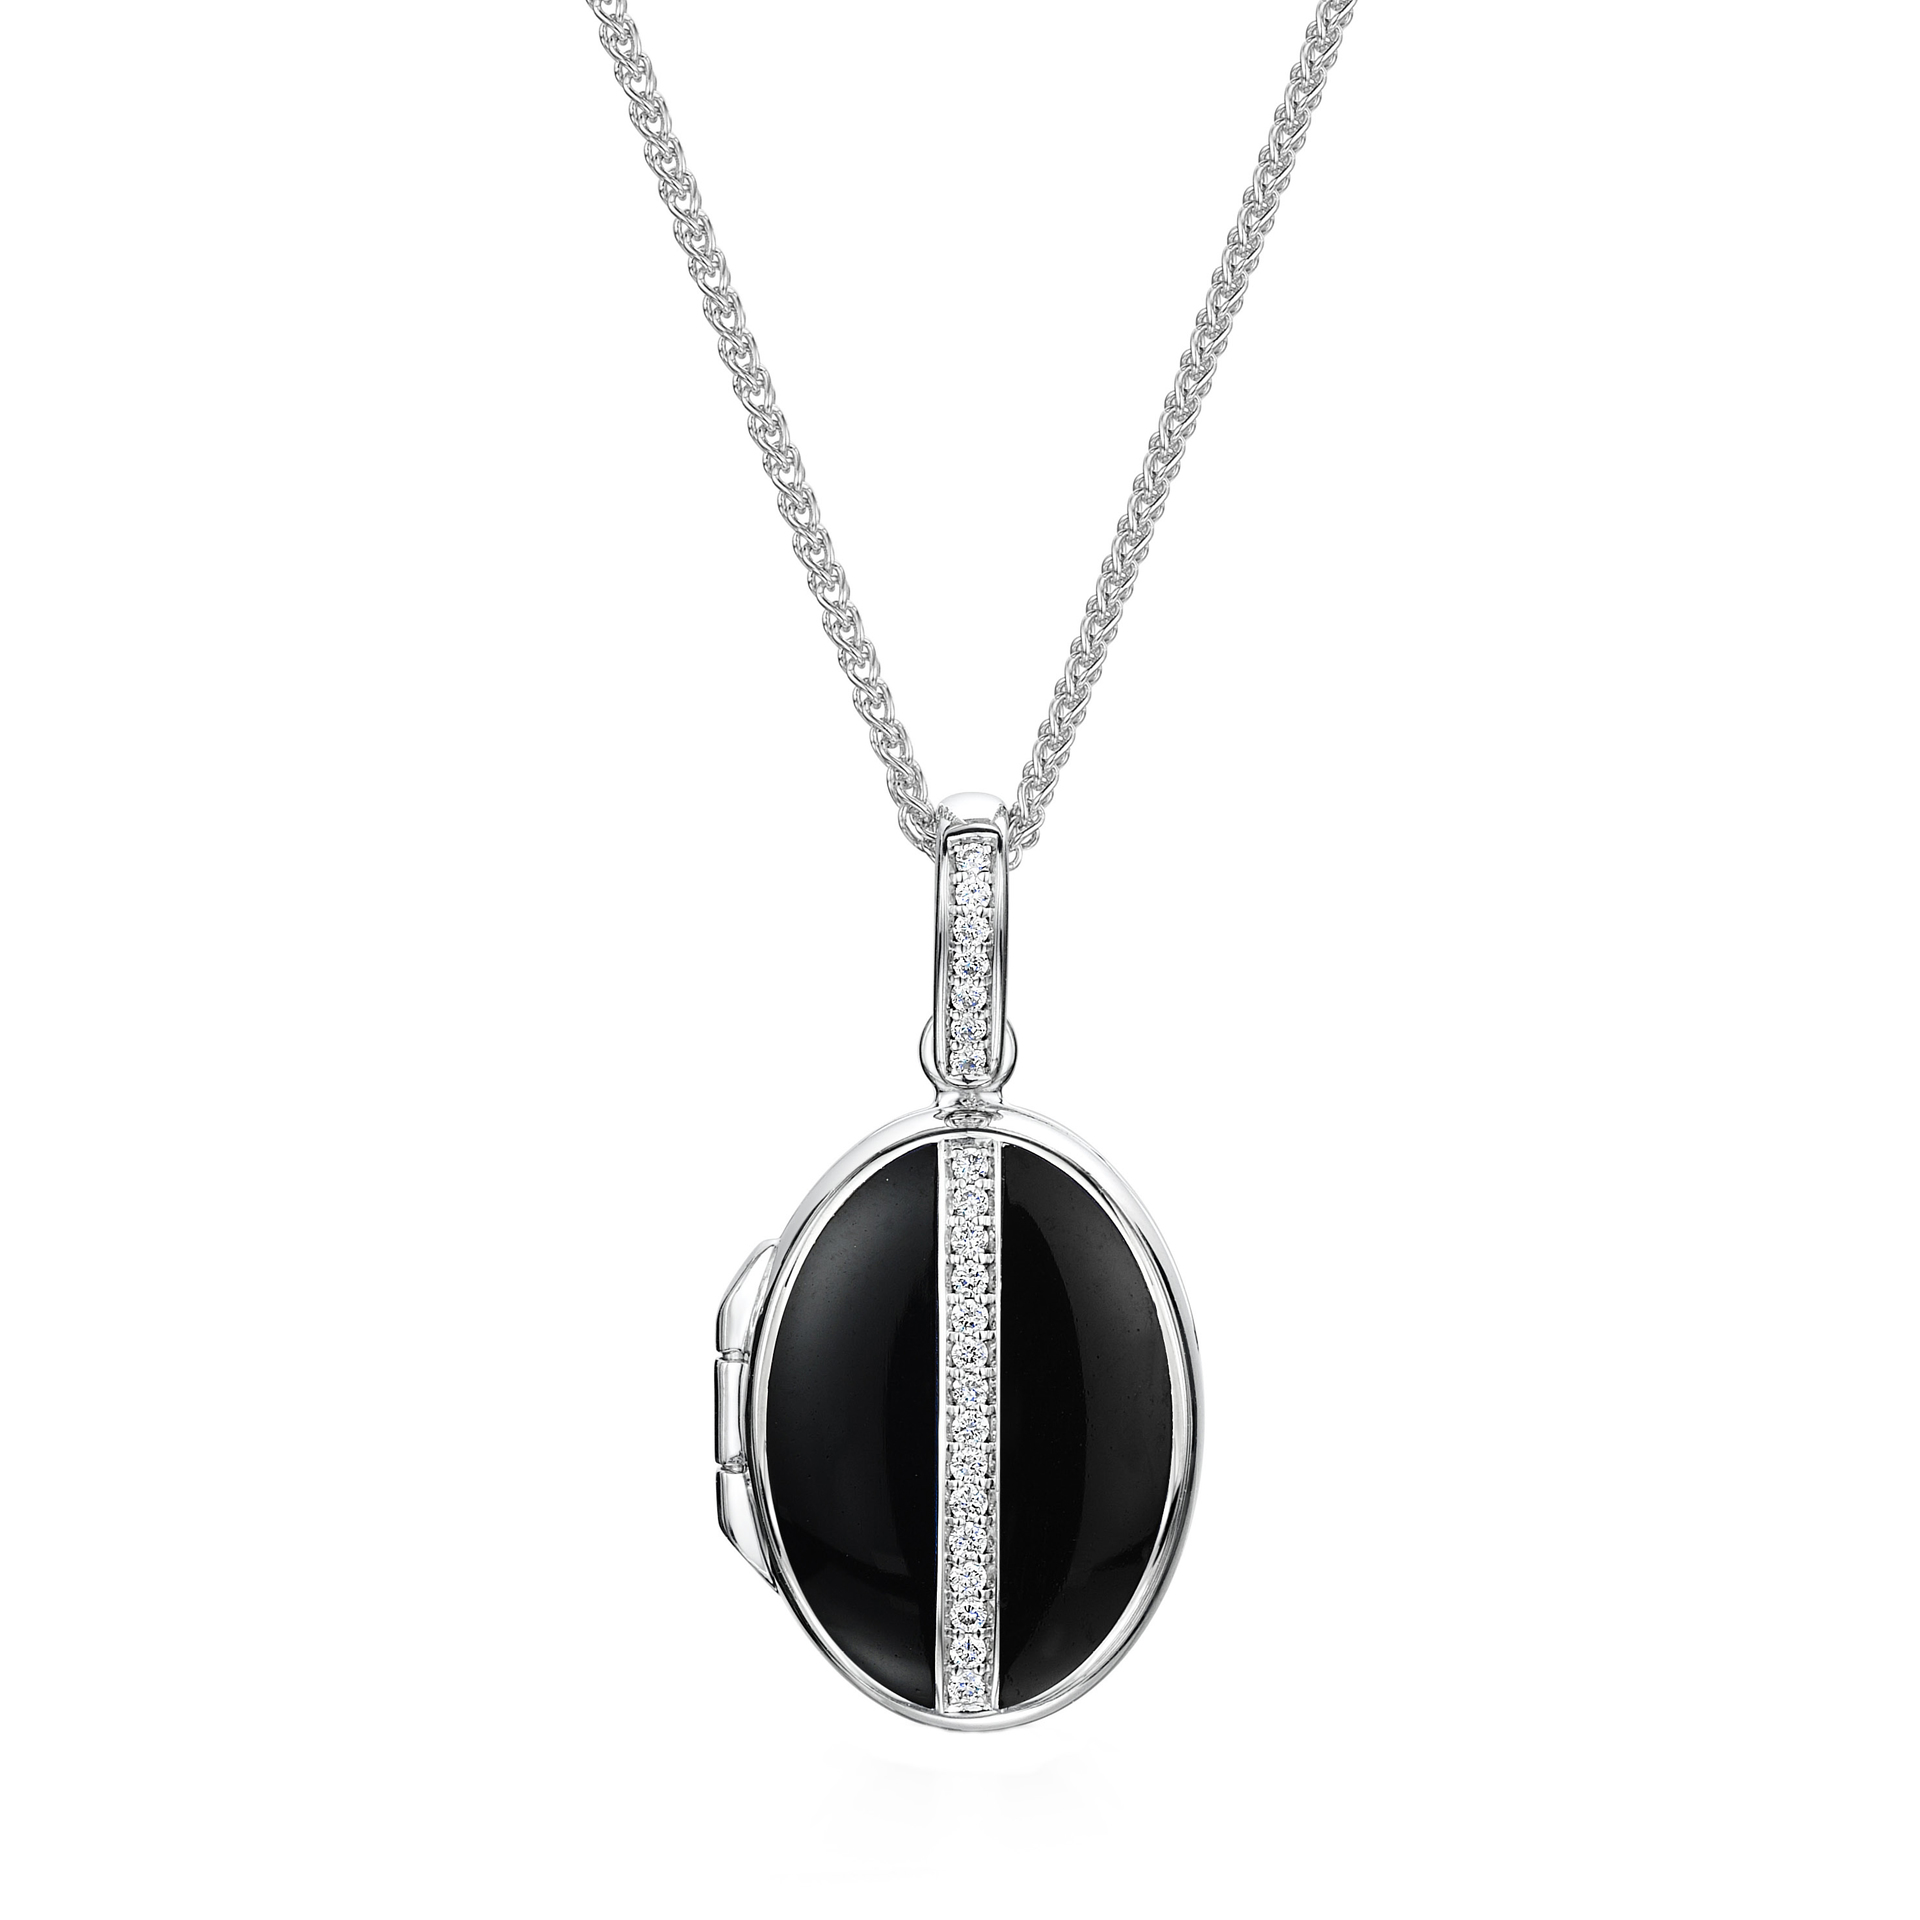 18ct White gold Oval Diamond & Black Enamelled Locket